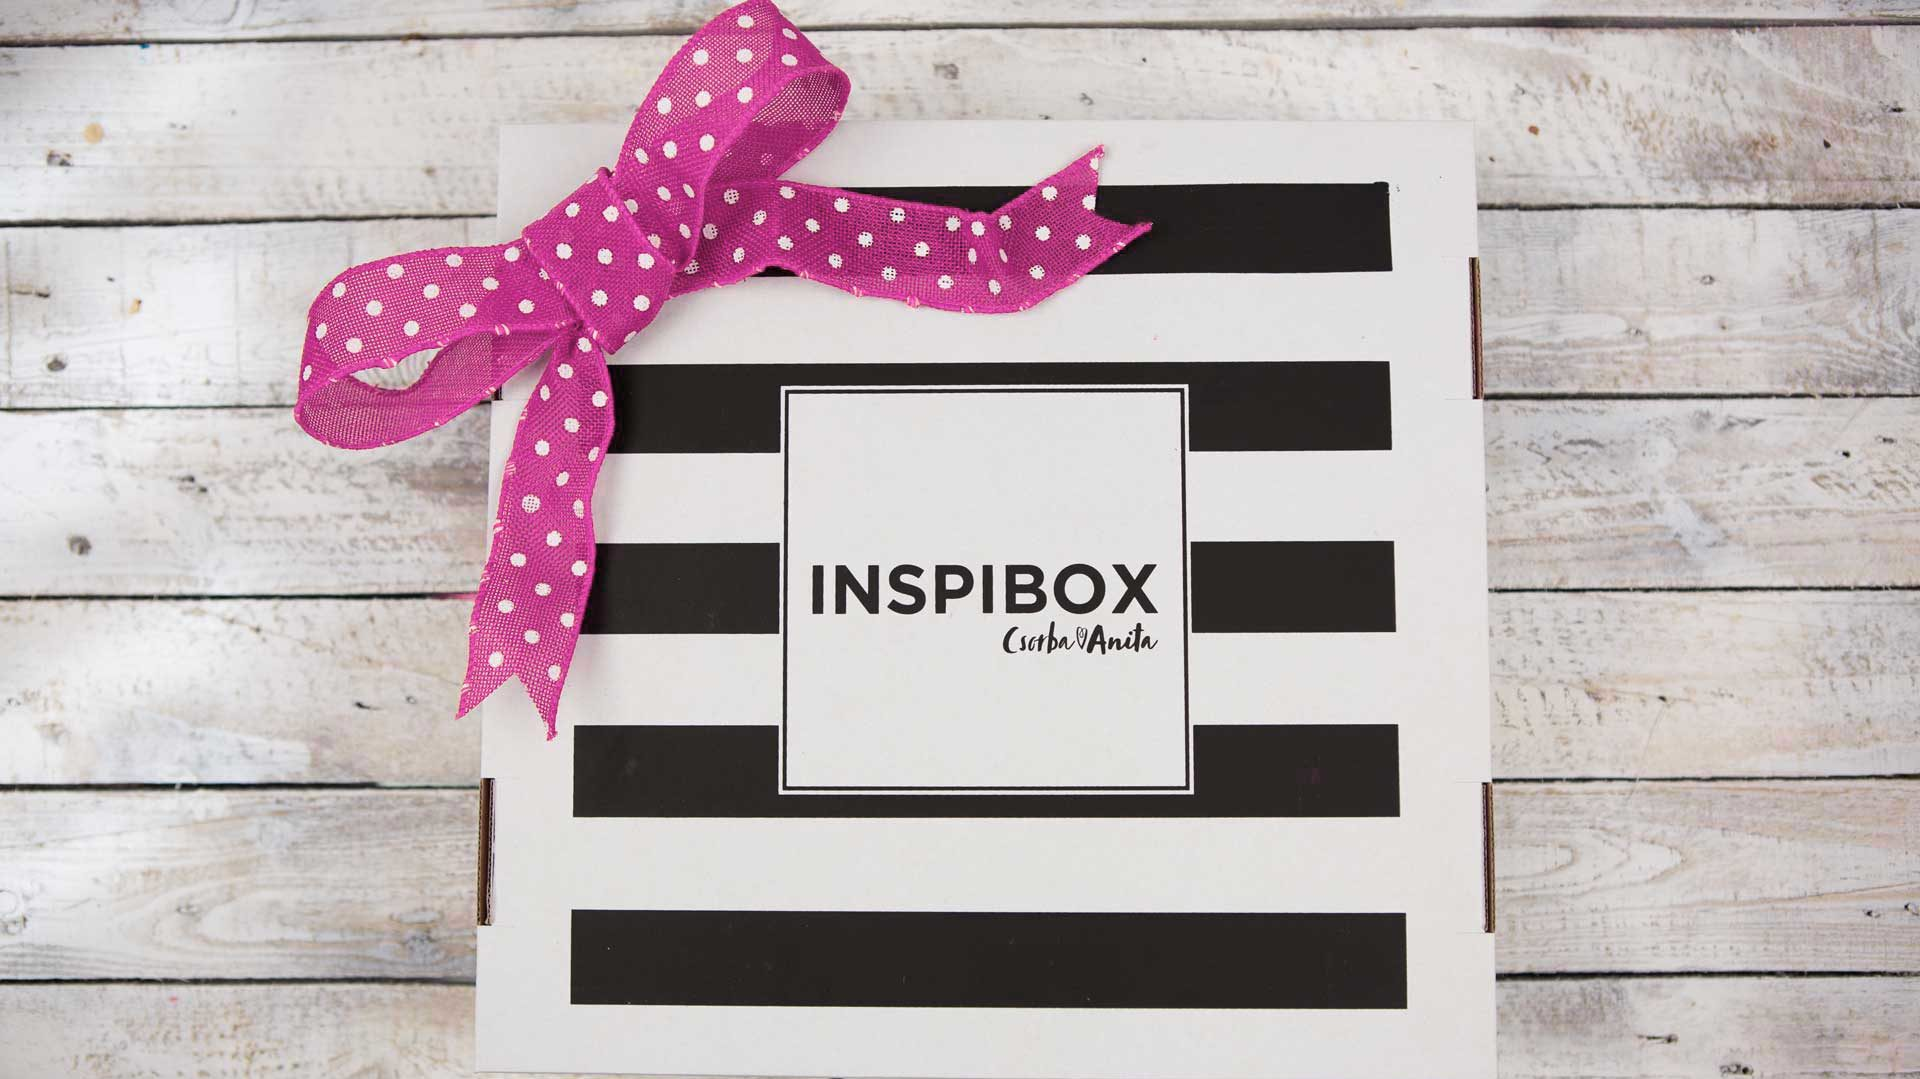 Inspibox by Csorba Anita